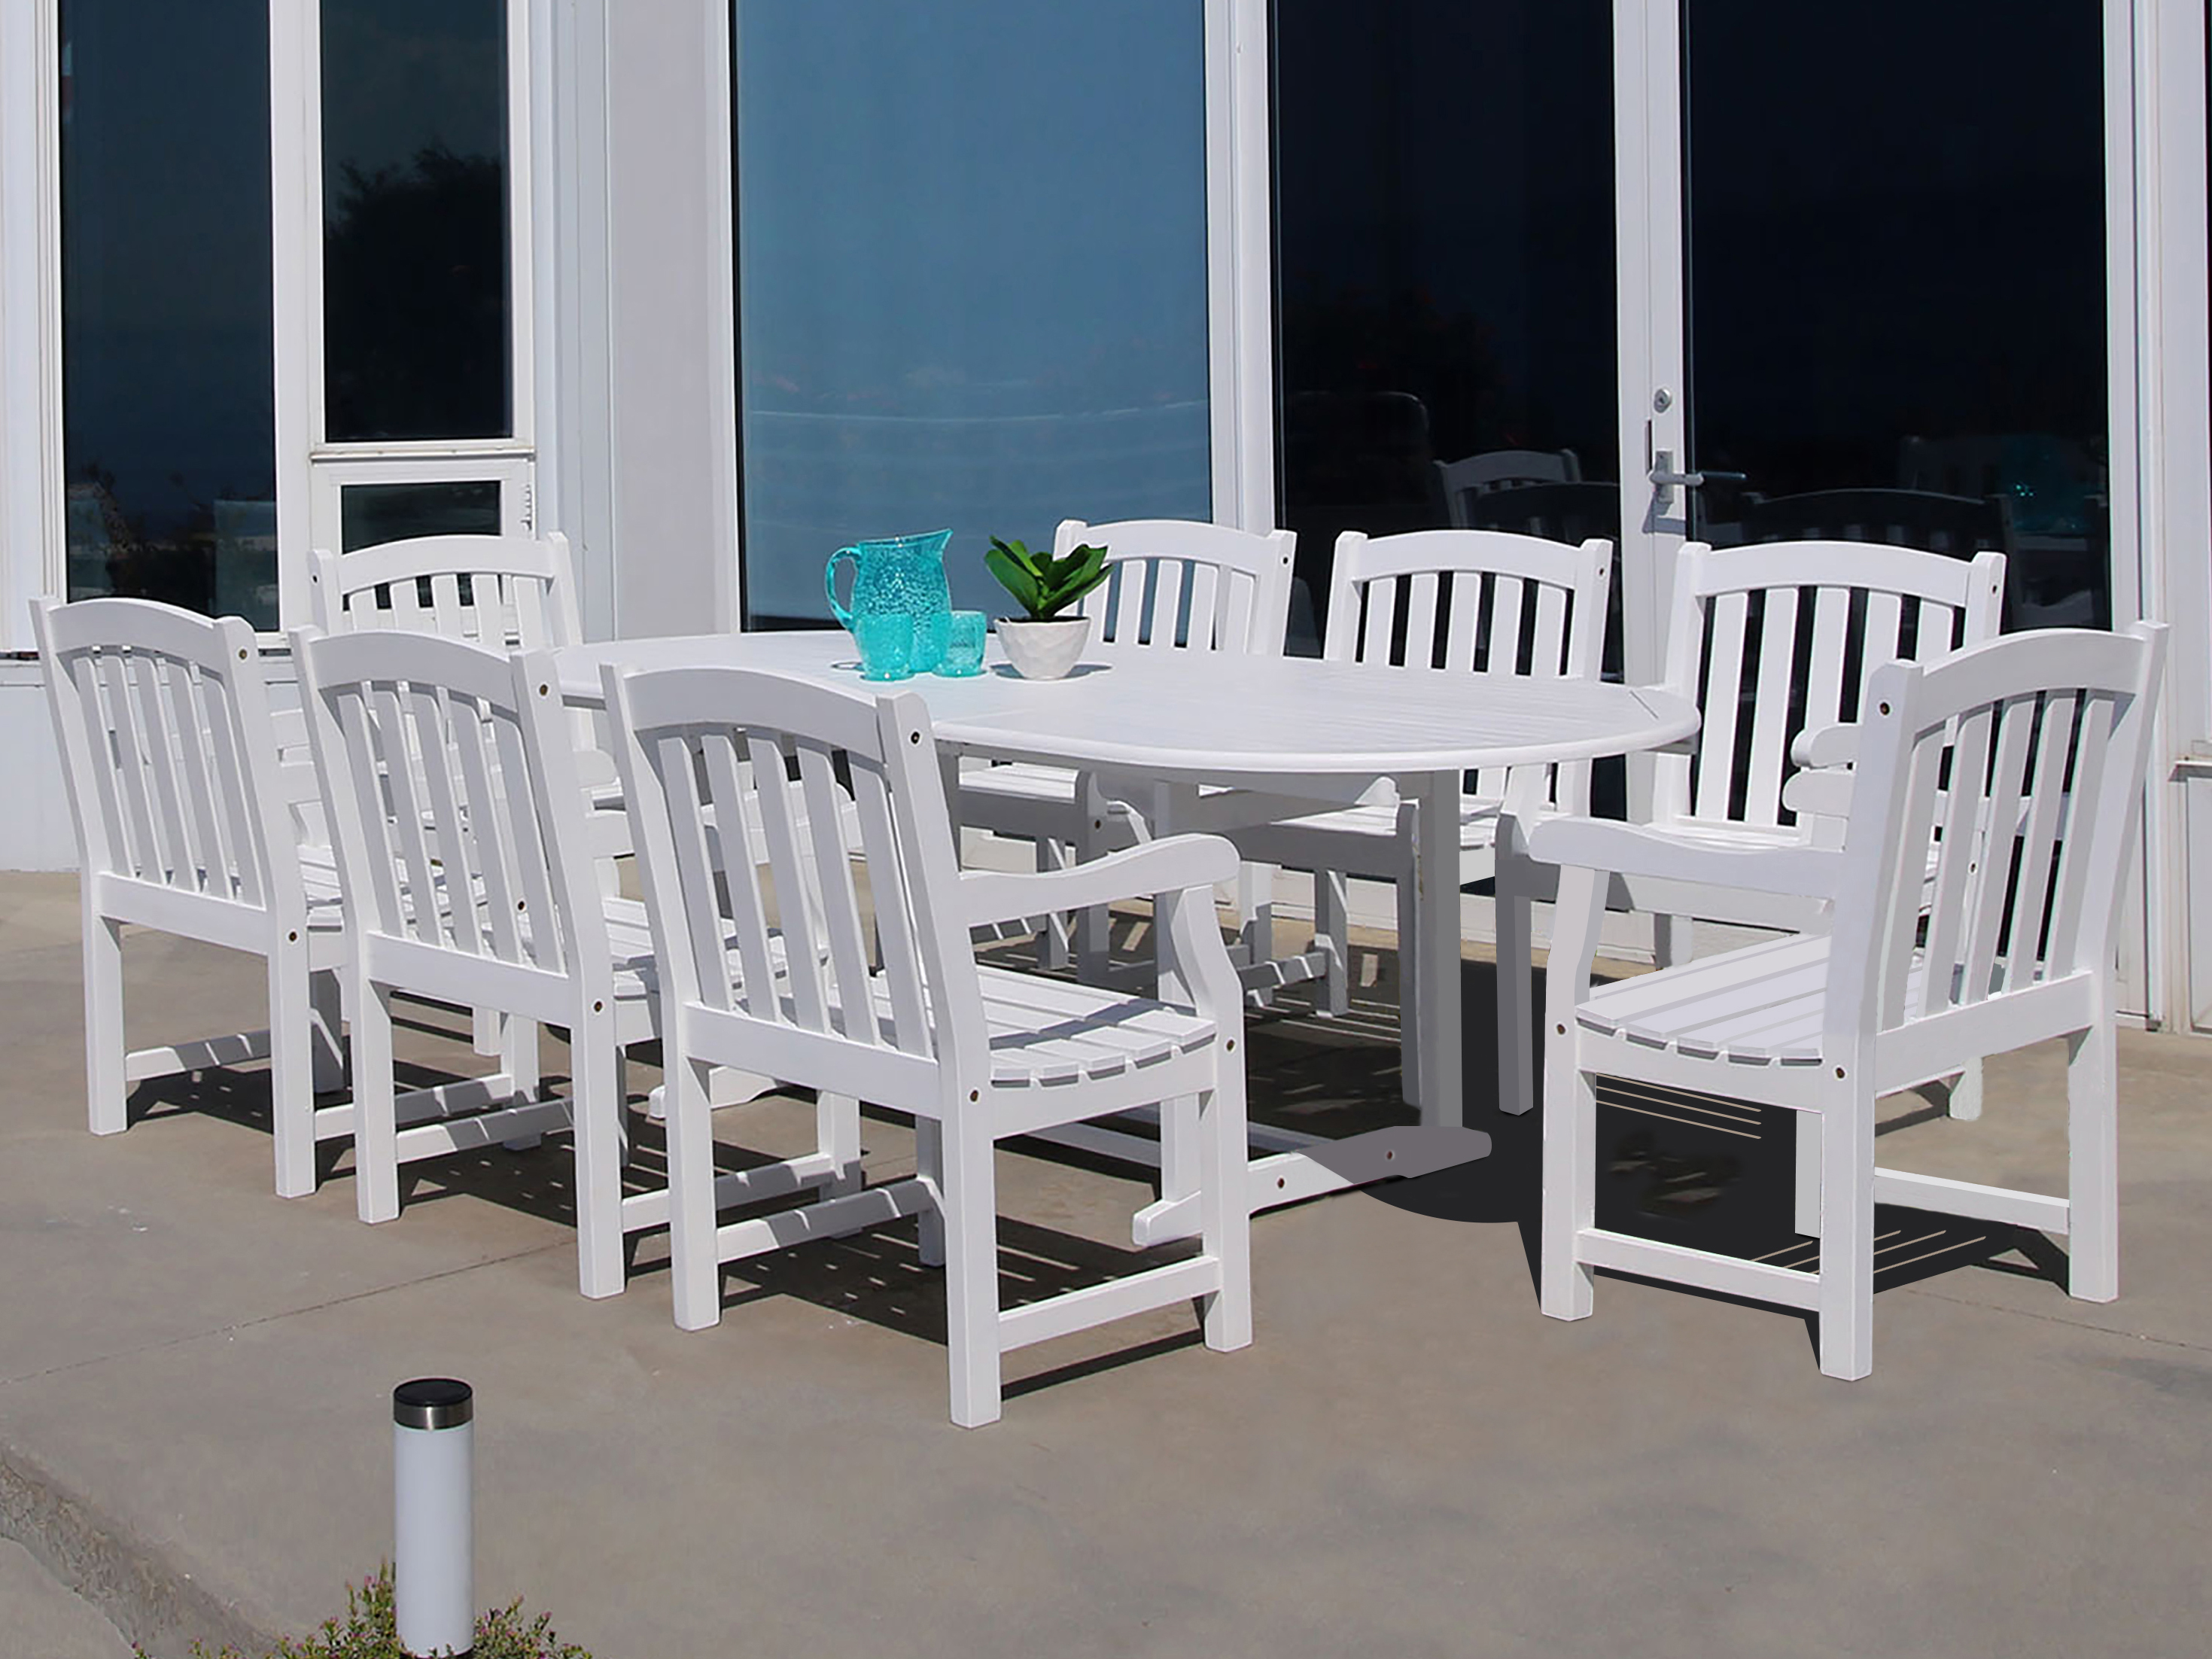 Vifah Bradley Eco Friendly 9 Piece Outdoor White Hardwood Dining Set With  Oval Extension Table And Arm Chairs